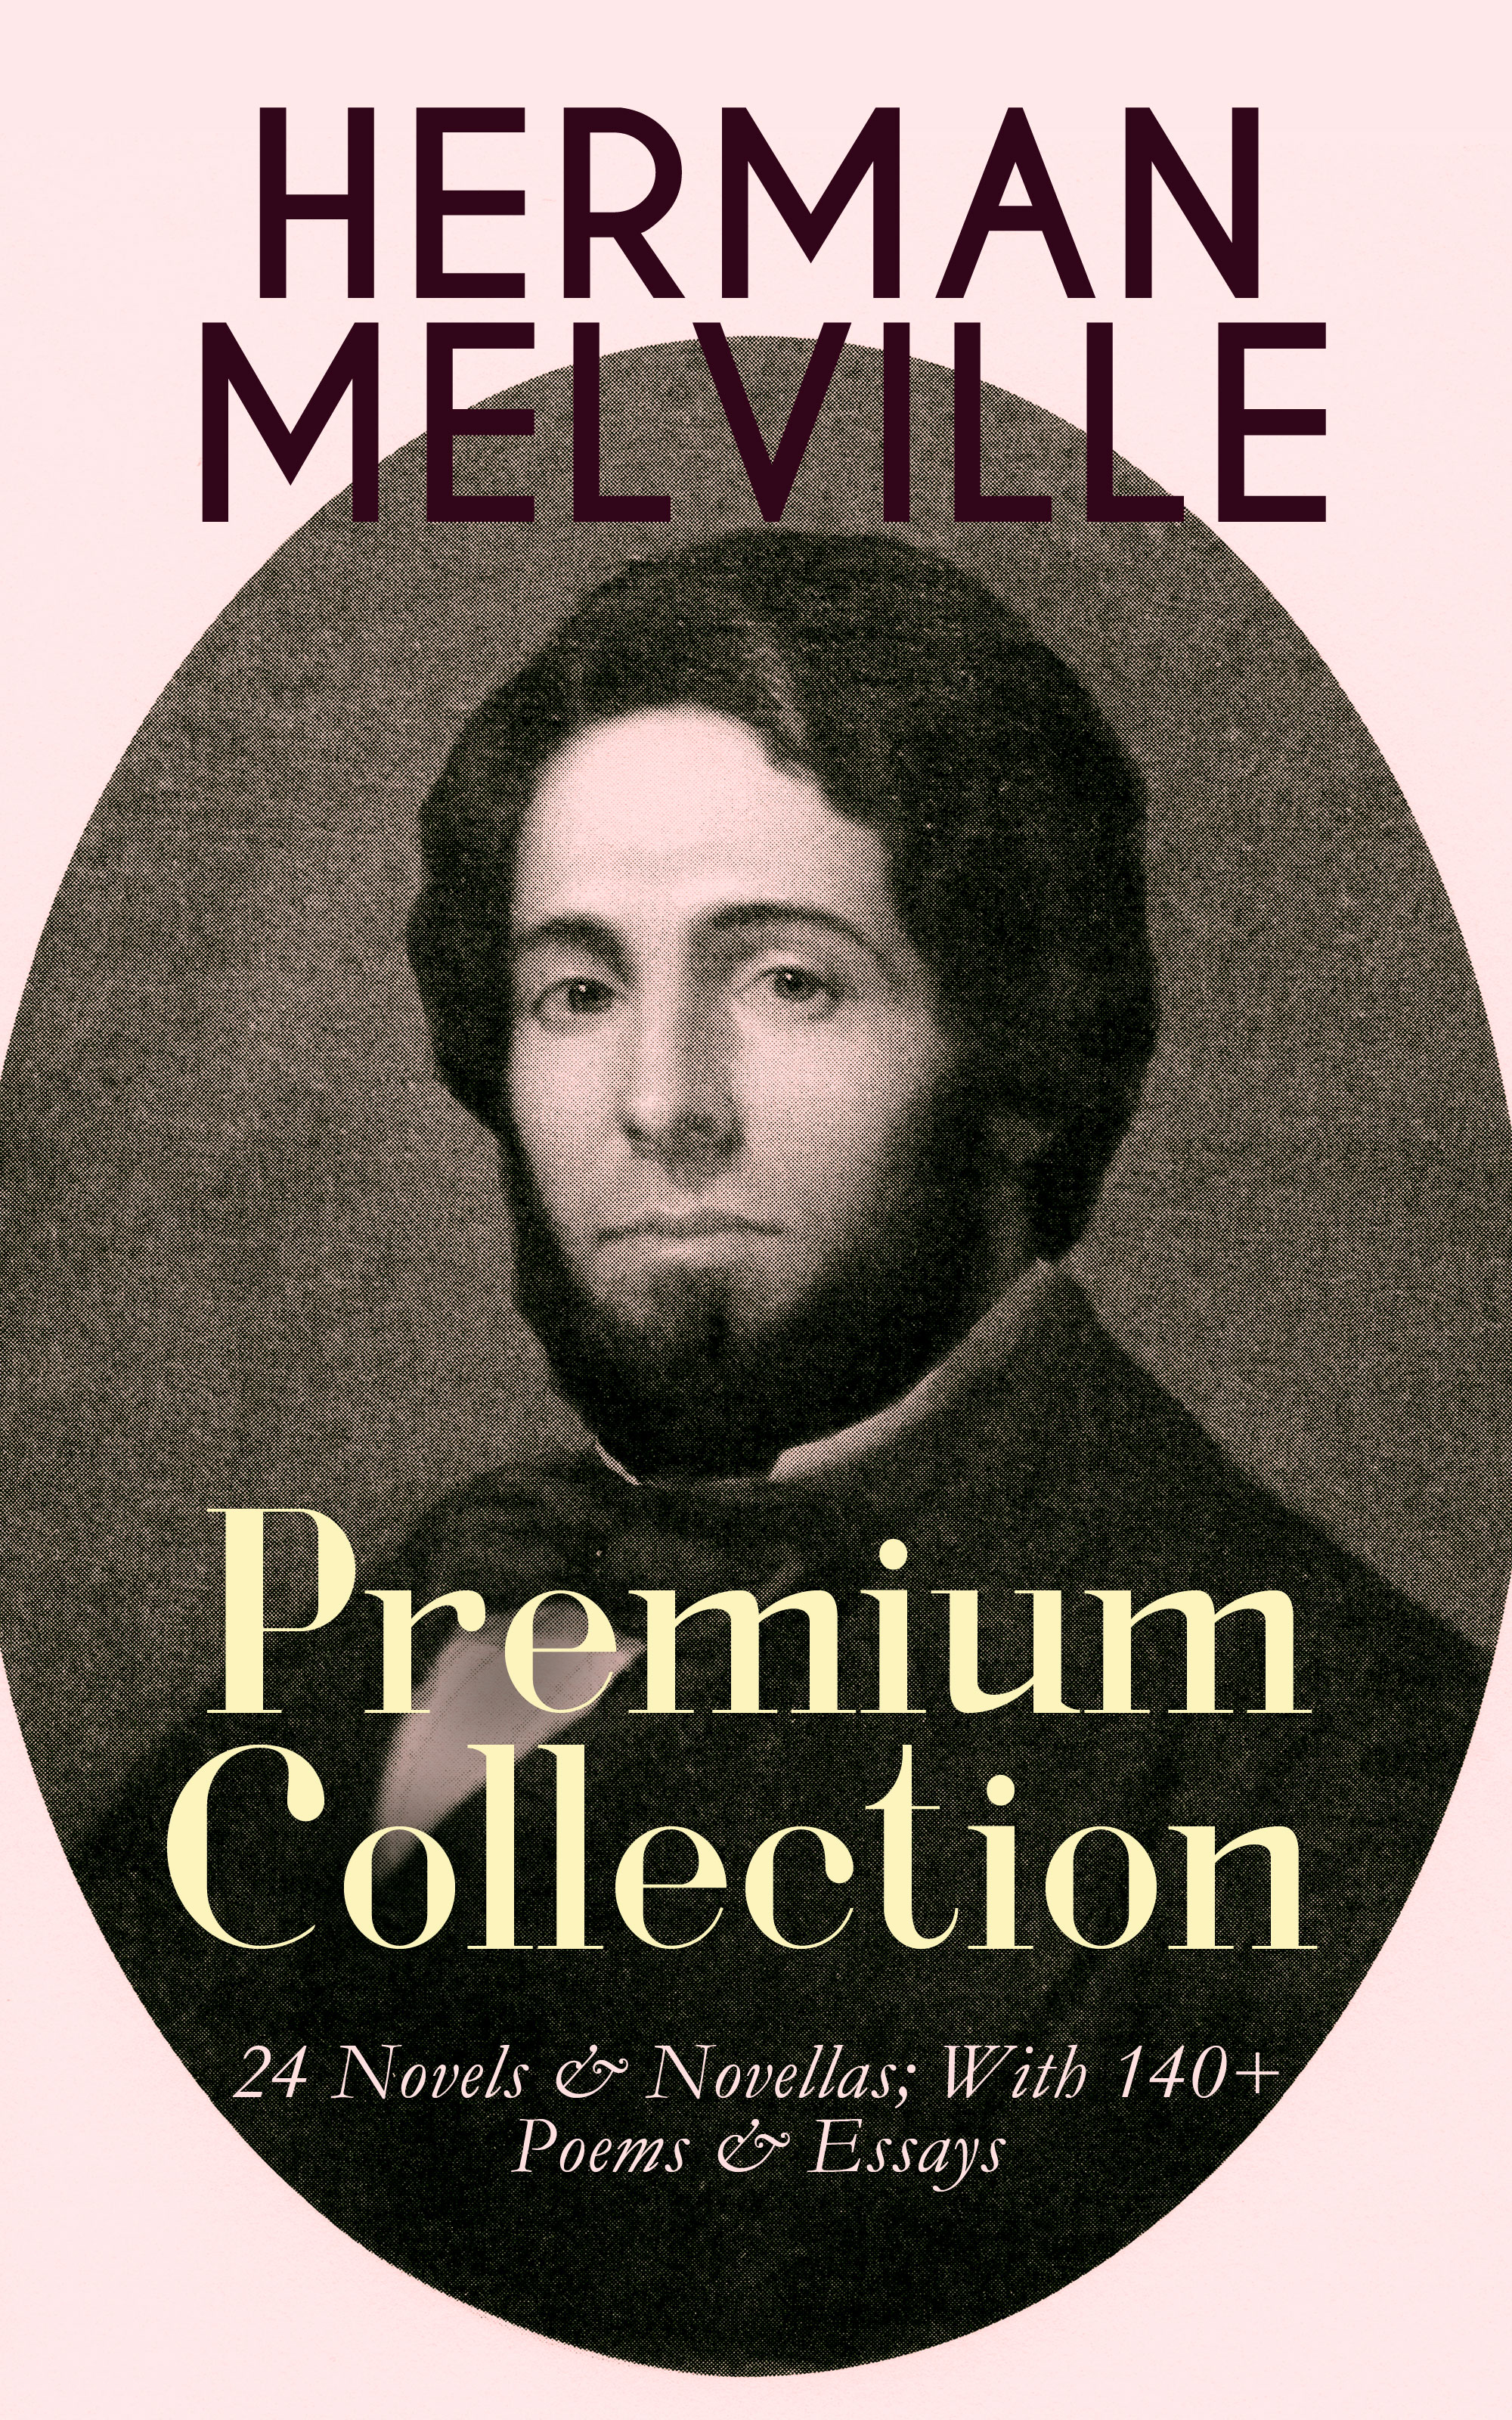 Herman Melville HERMAN MELVILLE – Premium Collection: 24 Novels & Novellas; With 140+ Poems & Essays